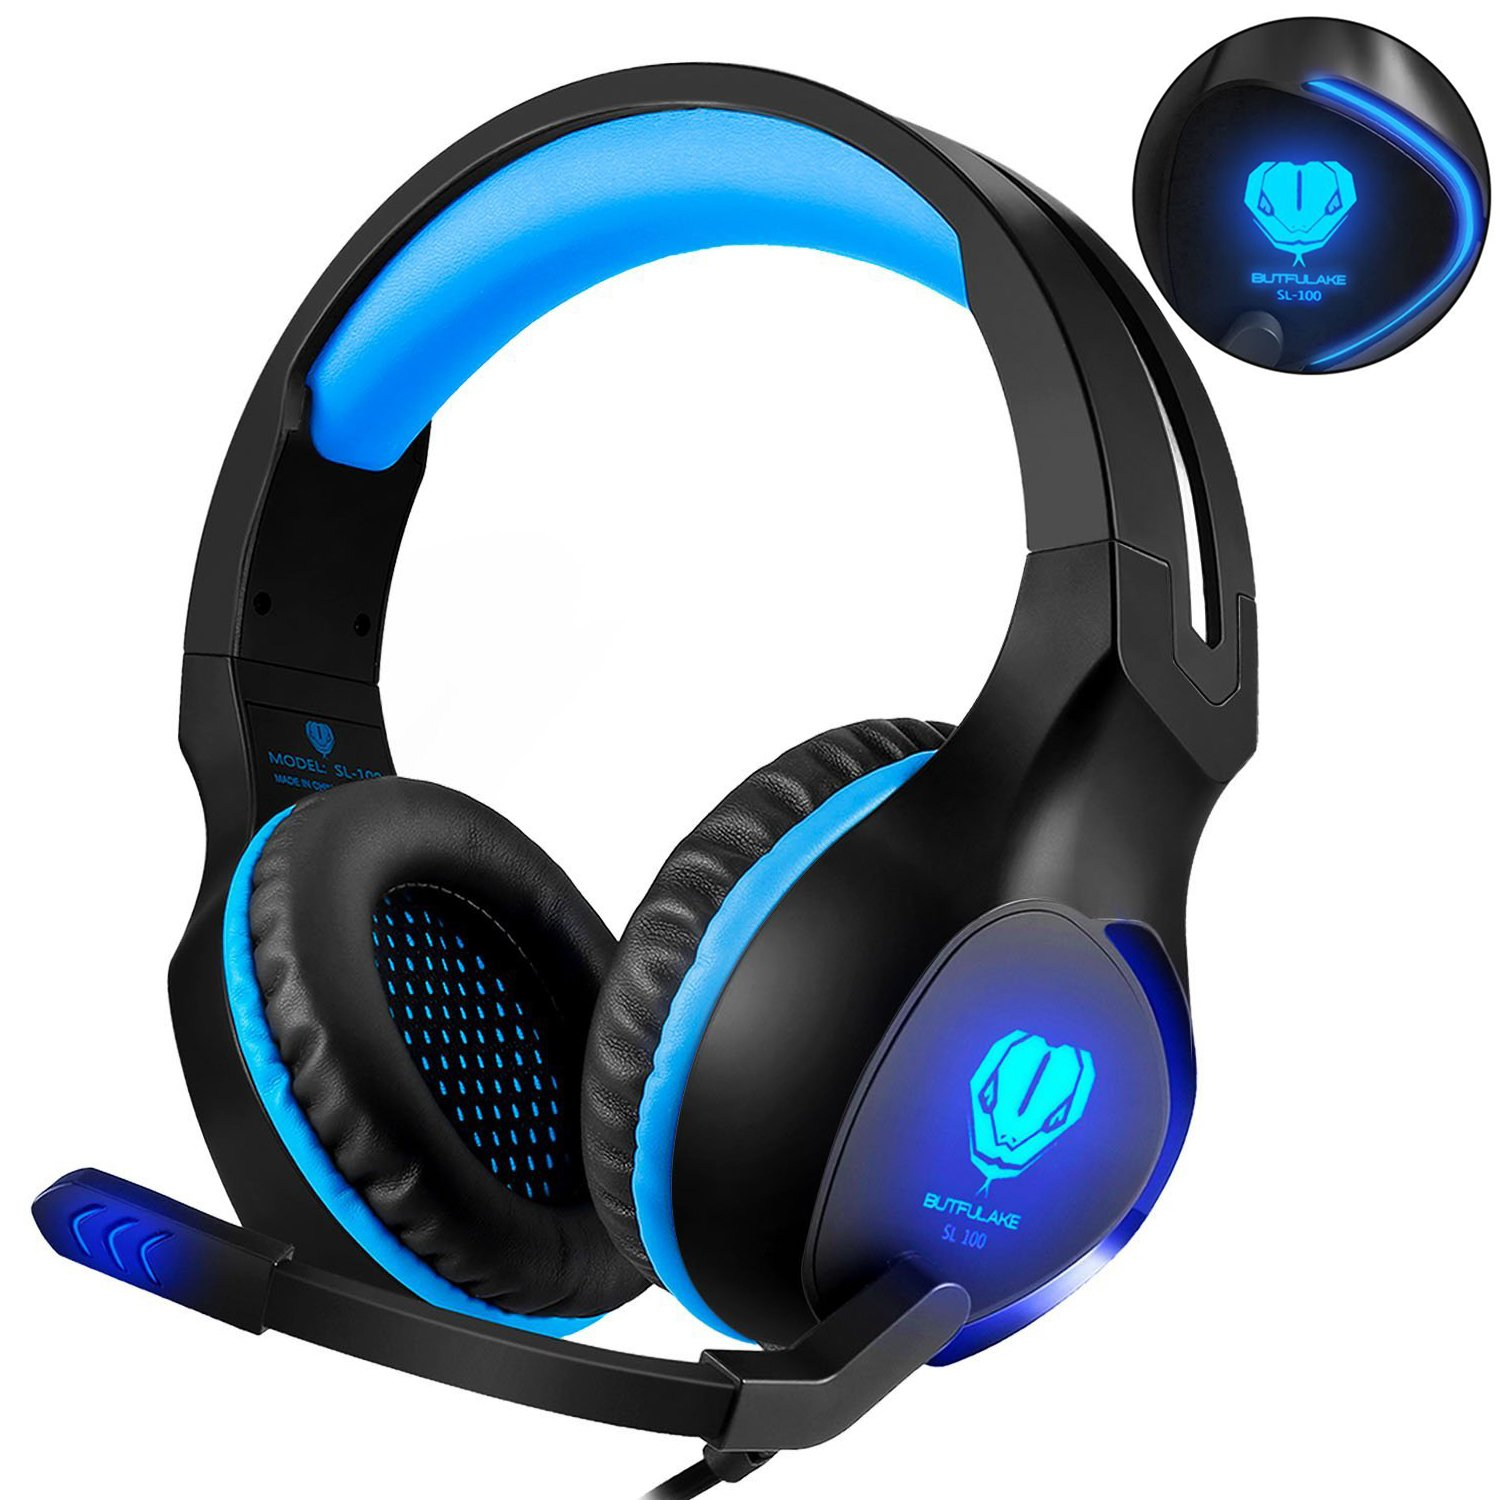 Fenvella Gaming Headset With Mic For PC/PS4/Xbox One Controller/Nintendo Switch 3.5mm Wired Stereo Noise Isolating Over Ear Headphones With LED Light Volume Control For Ipad/Laptop/Mobile Devices Blue